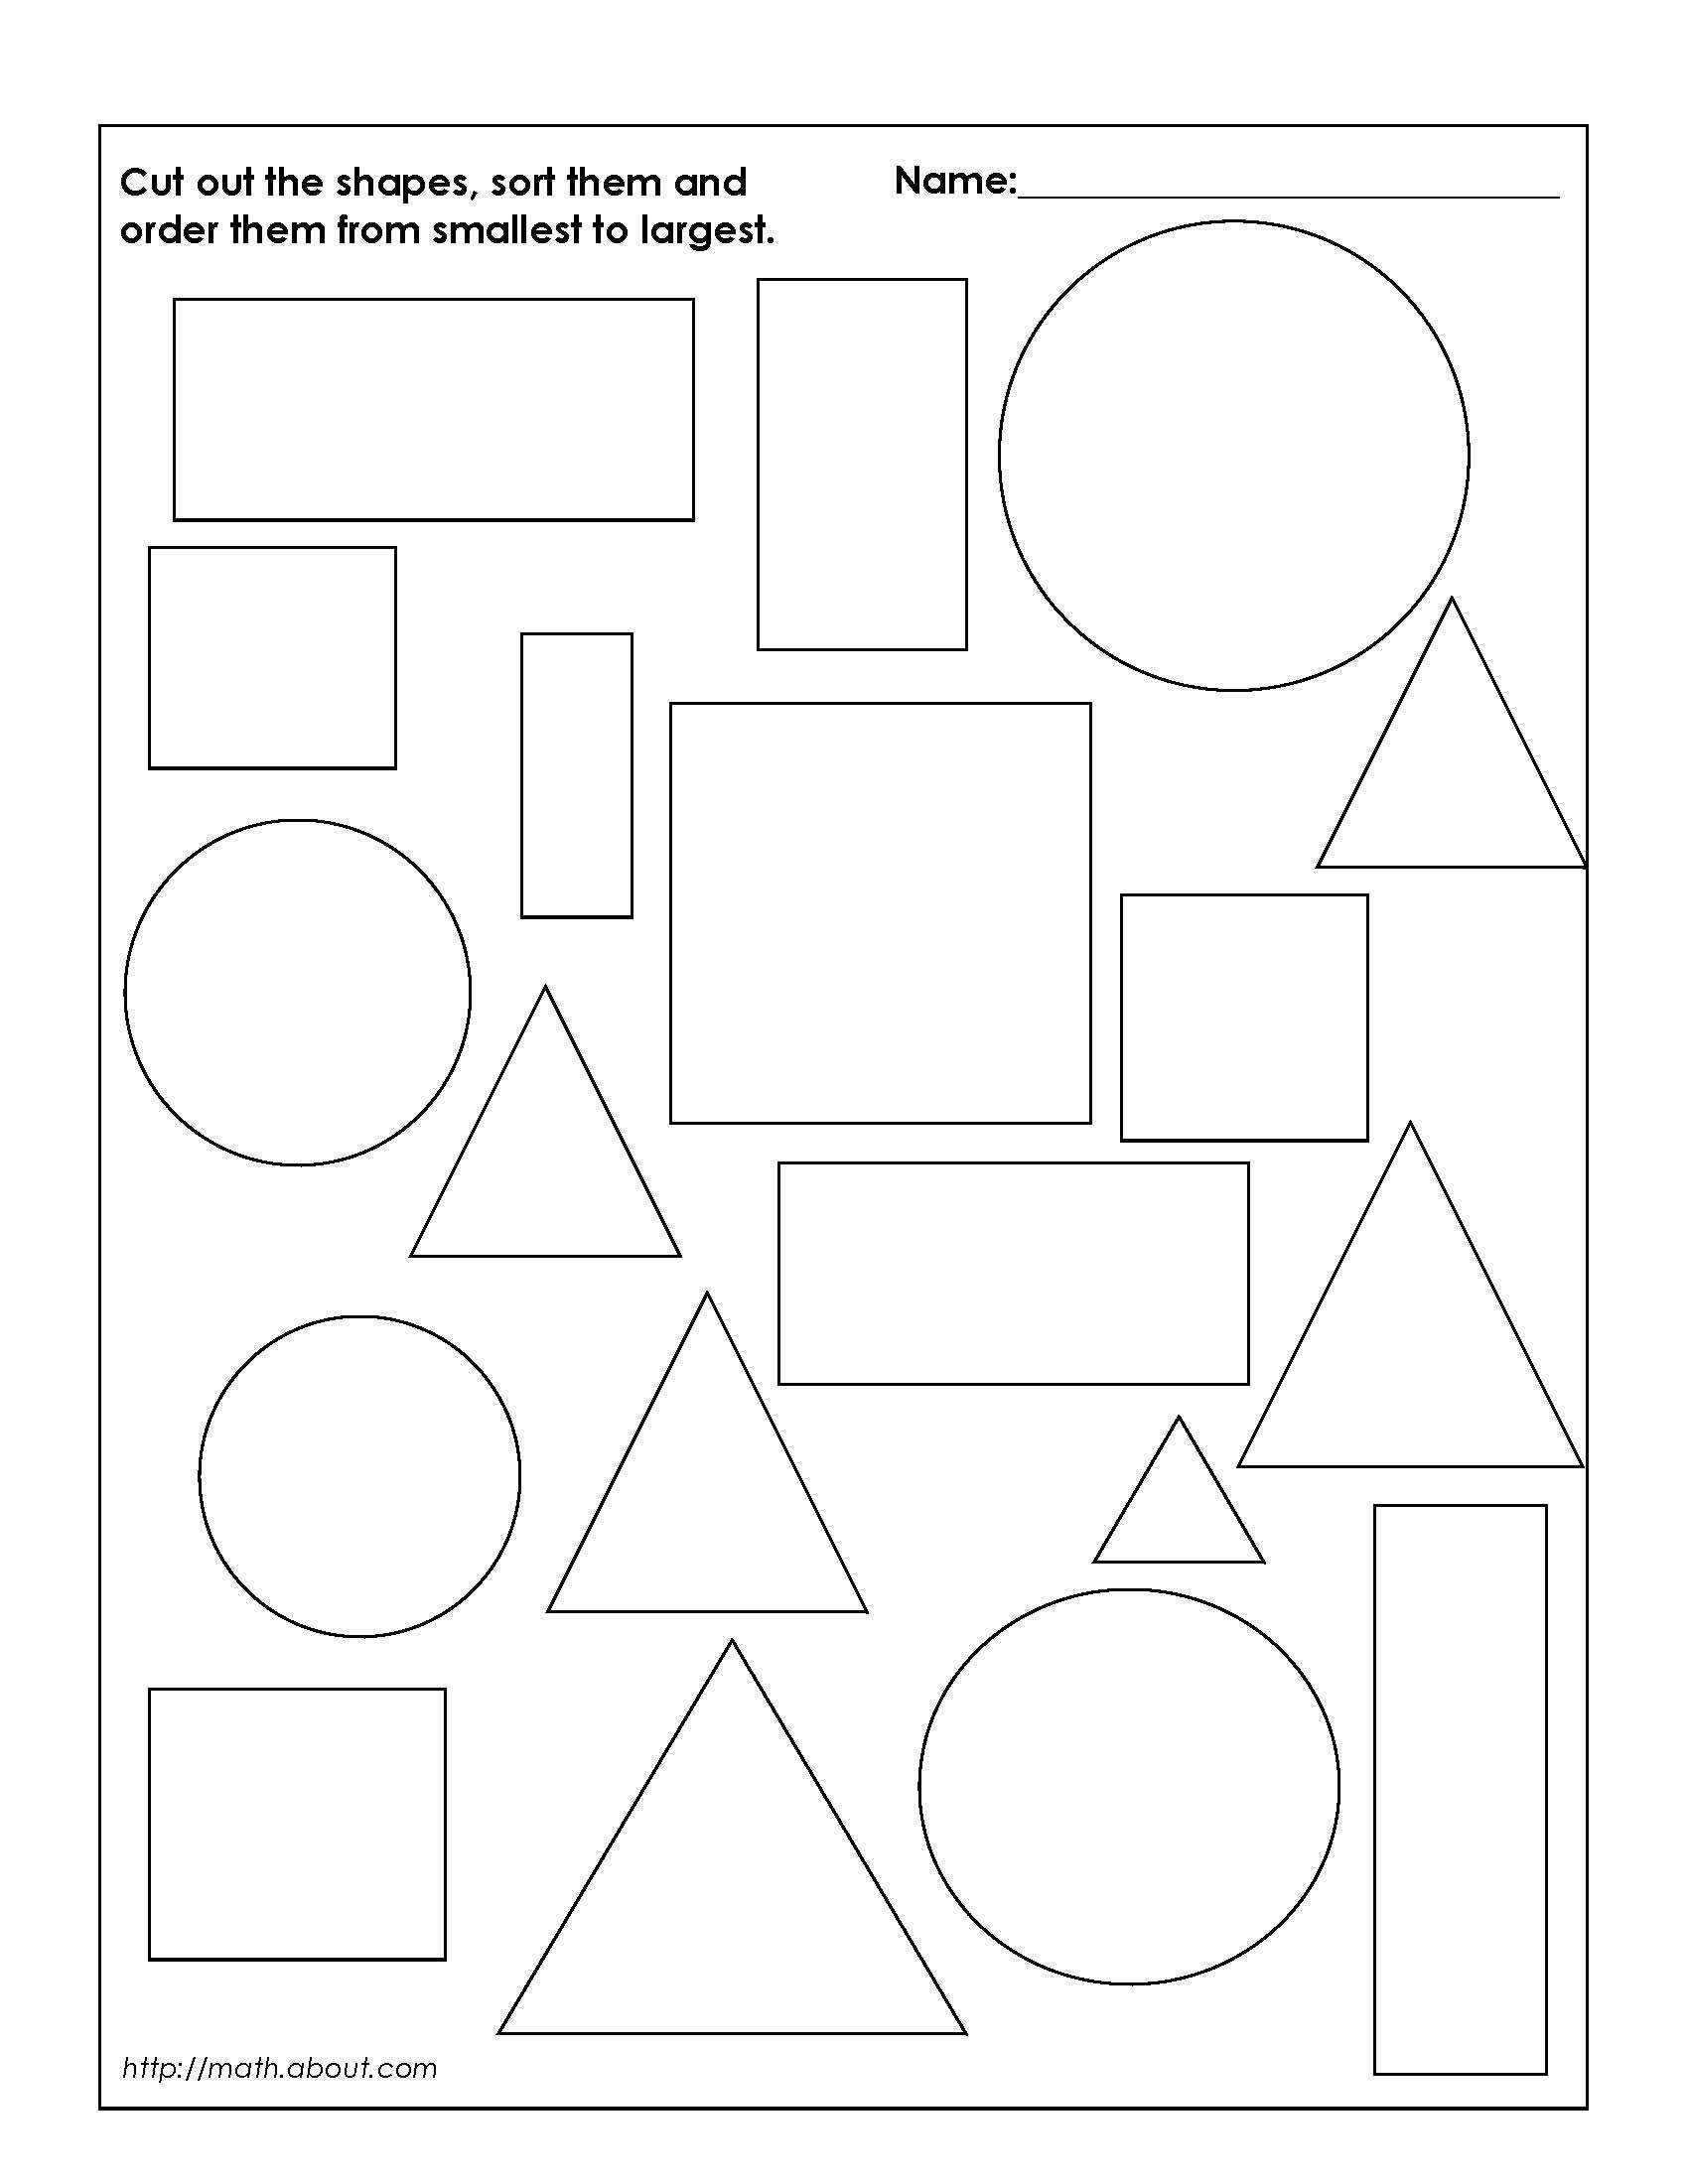 Sorting Shapes Worksheets First Grade Worksheet 6